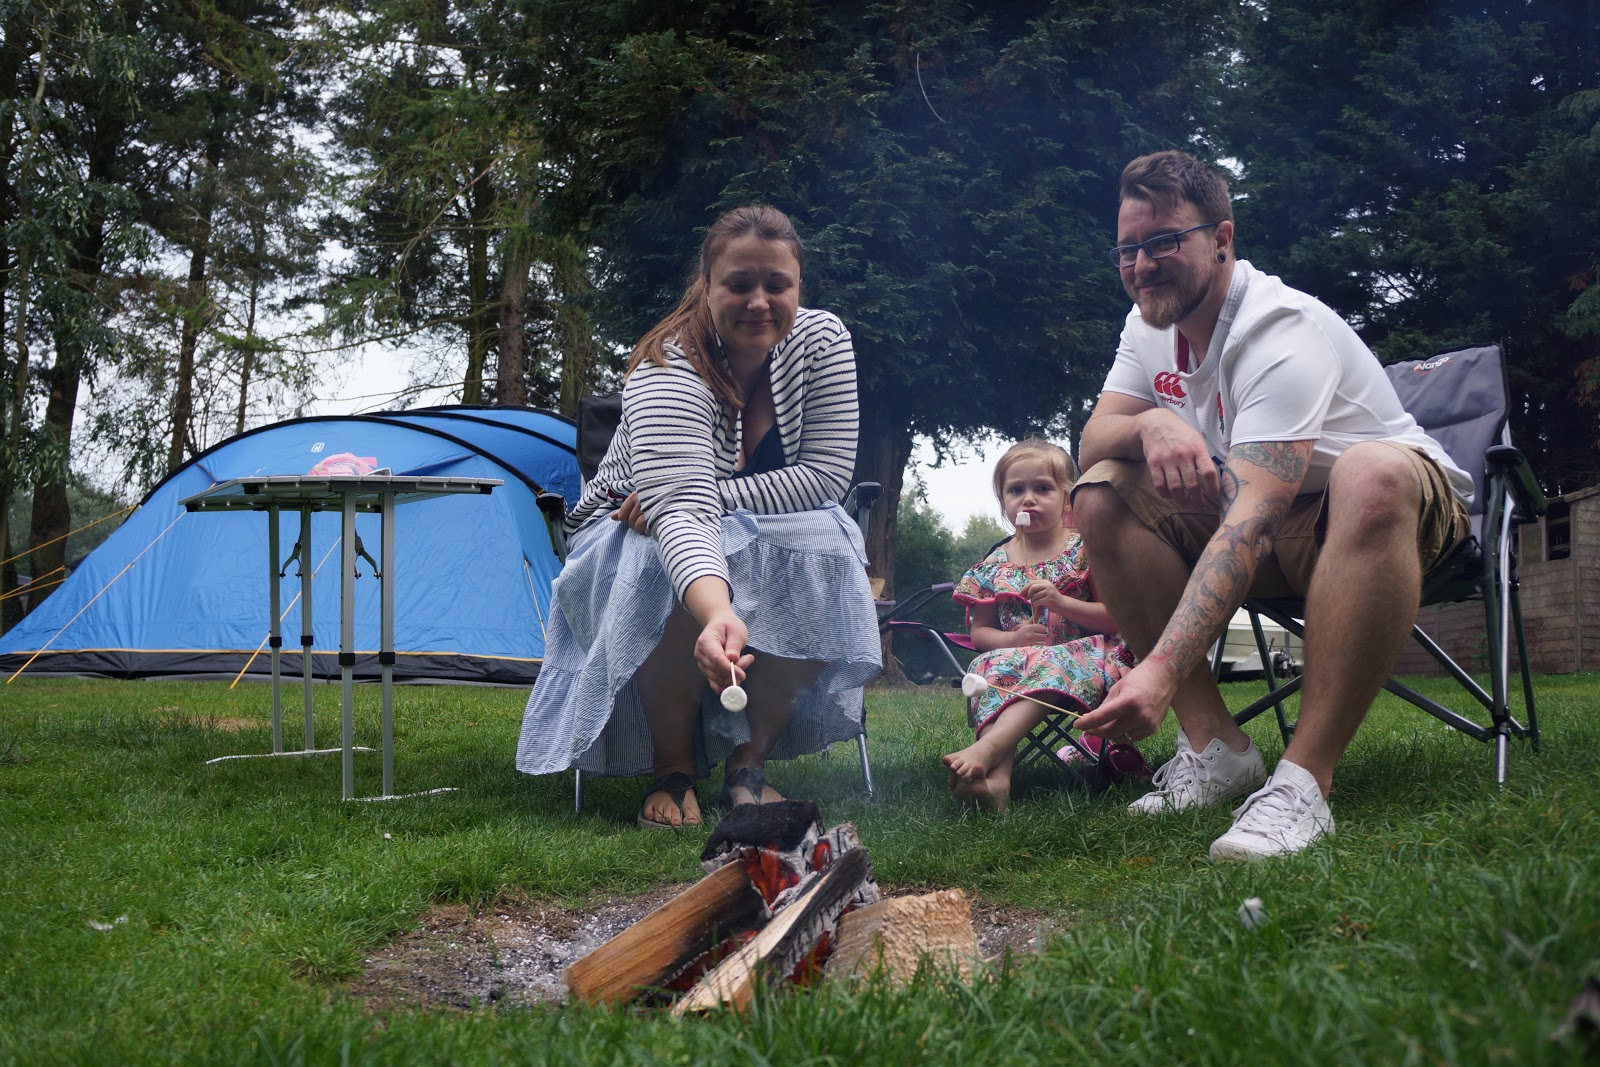 mum, dad and daughter sitting by campfire